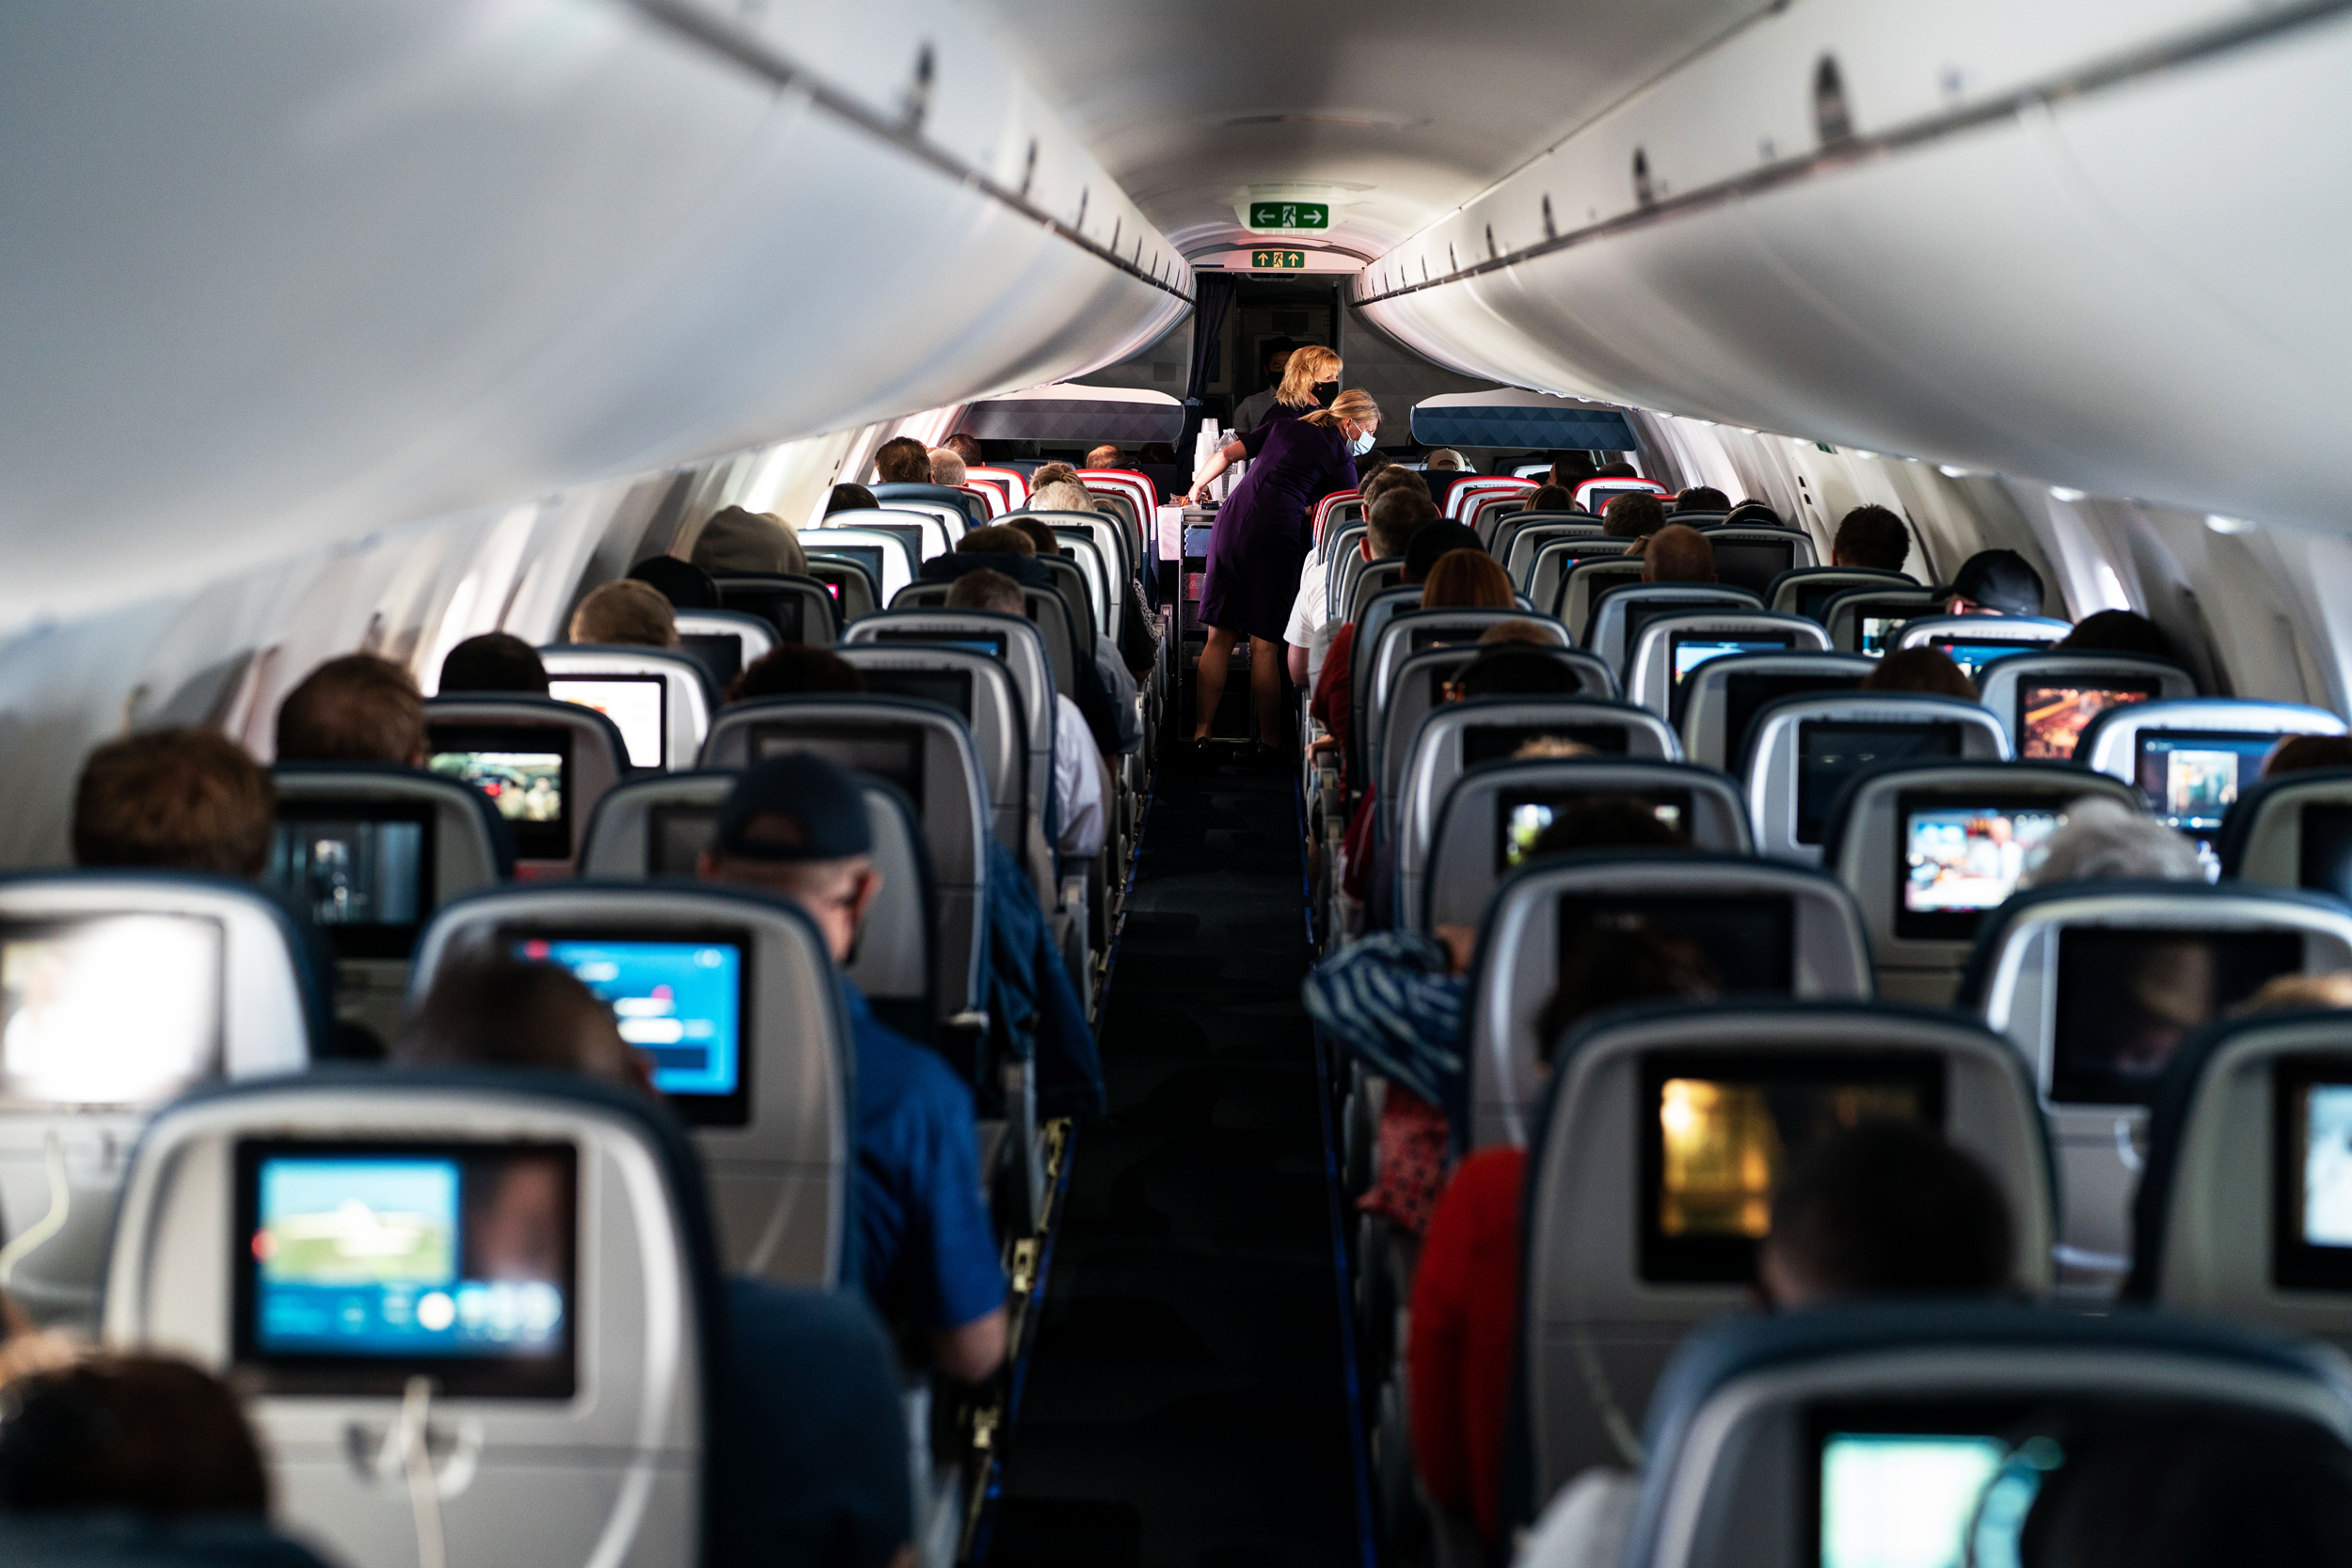 Delta Air Lines to hike up health insurance premiums for unvaccinated employees by $200 a month